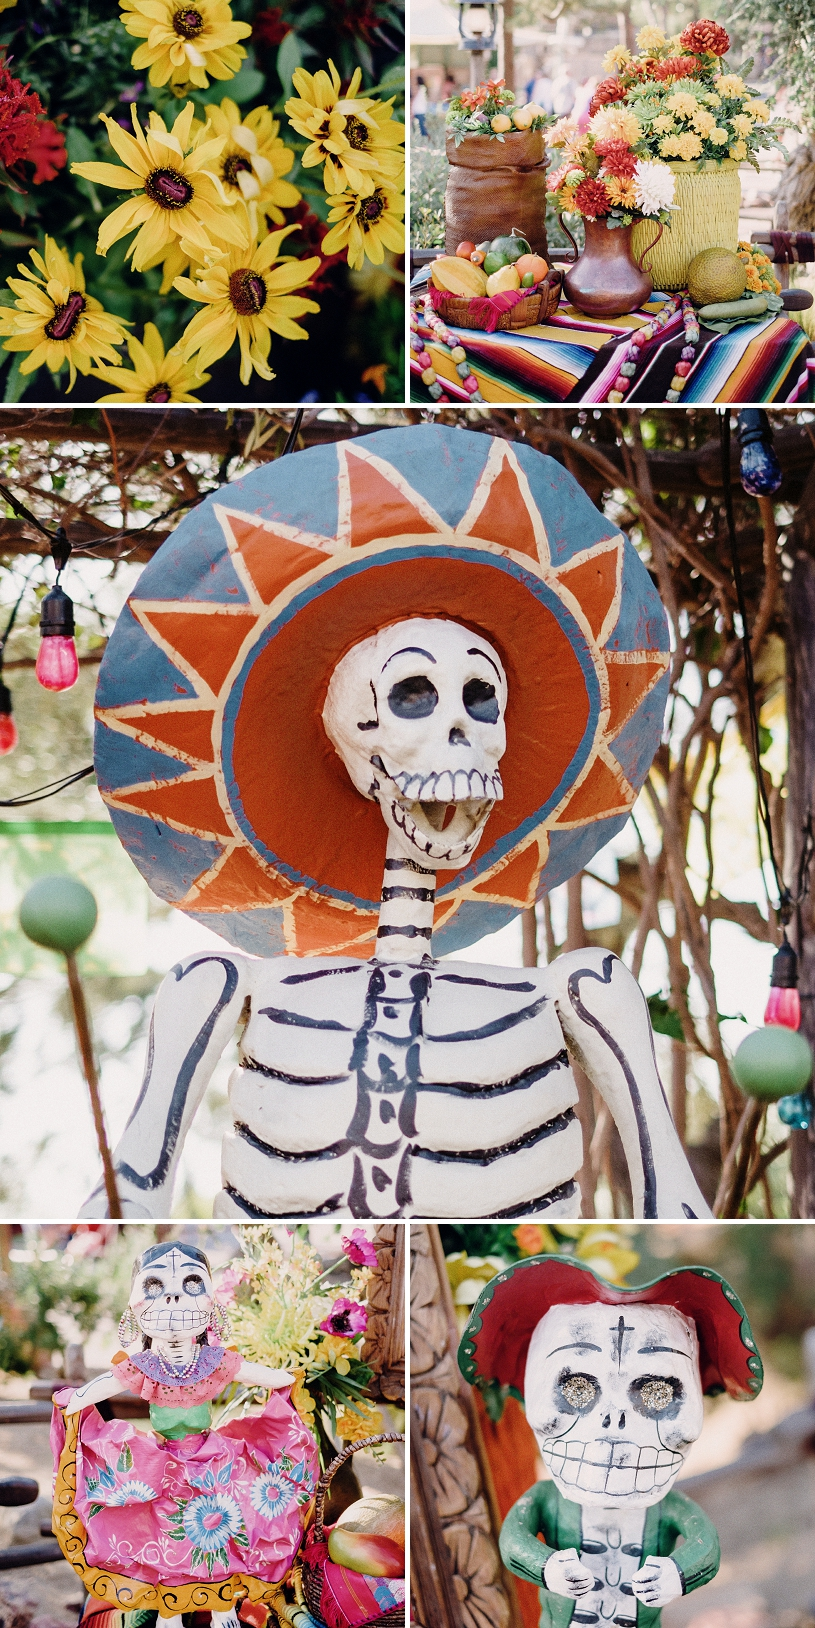 Halloween Day of the Dead display at Disneyland